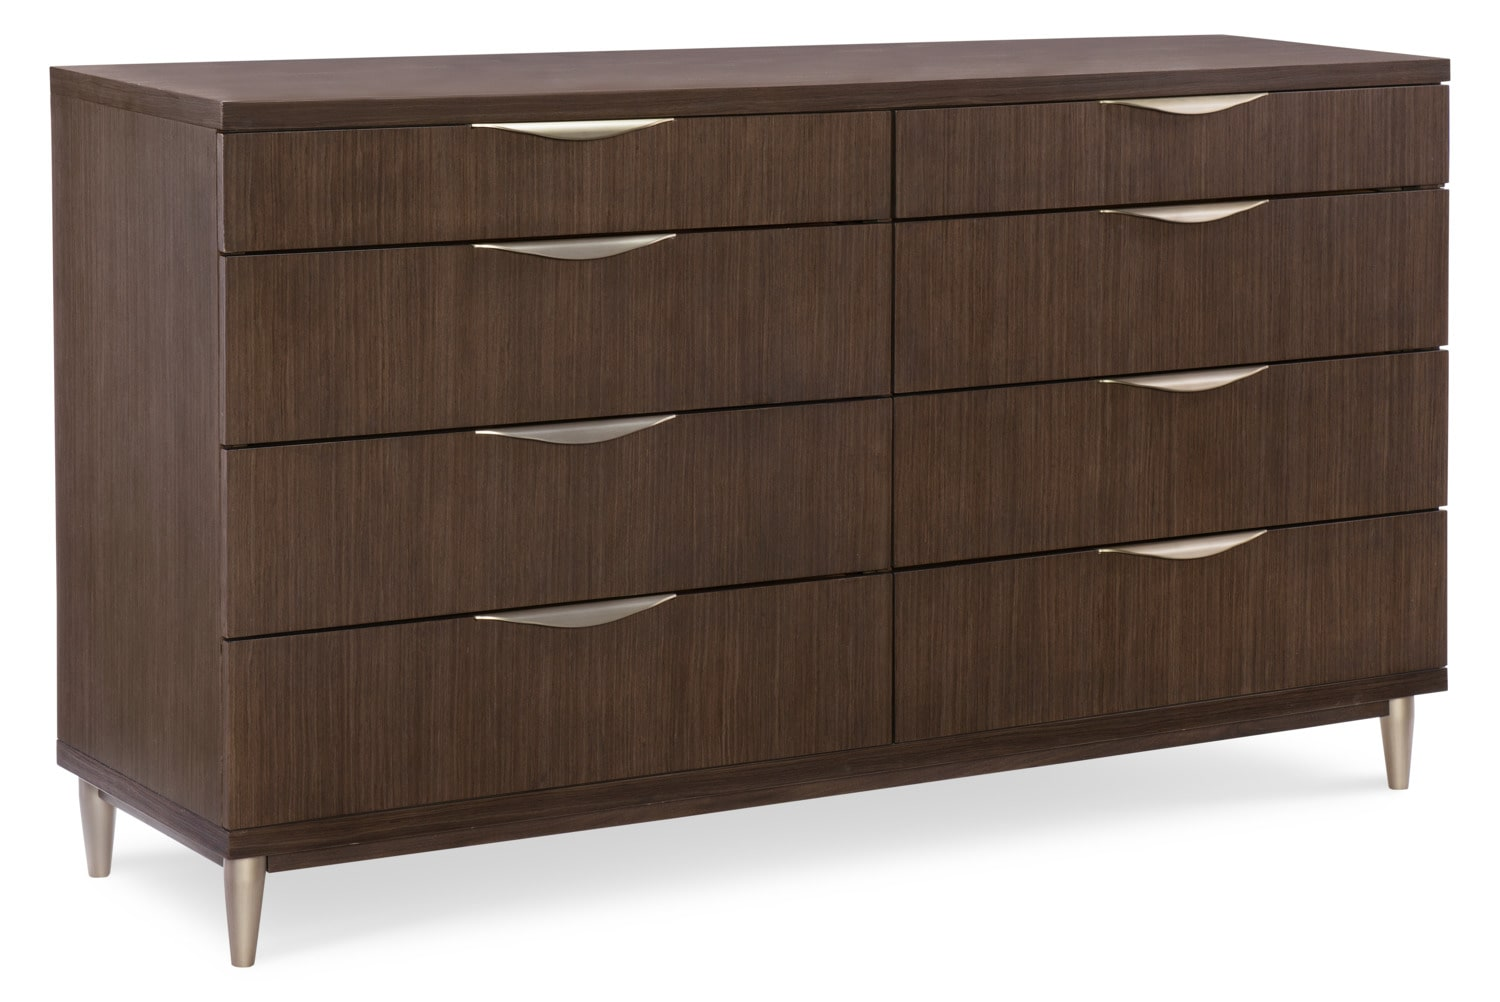 Rachael Ray Soho Dresser - Ash Brown